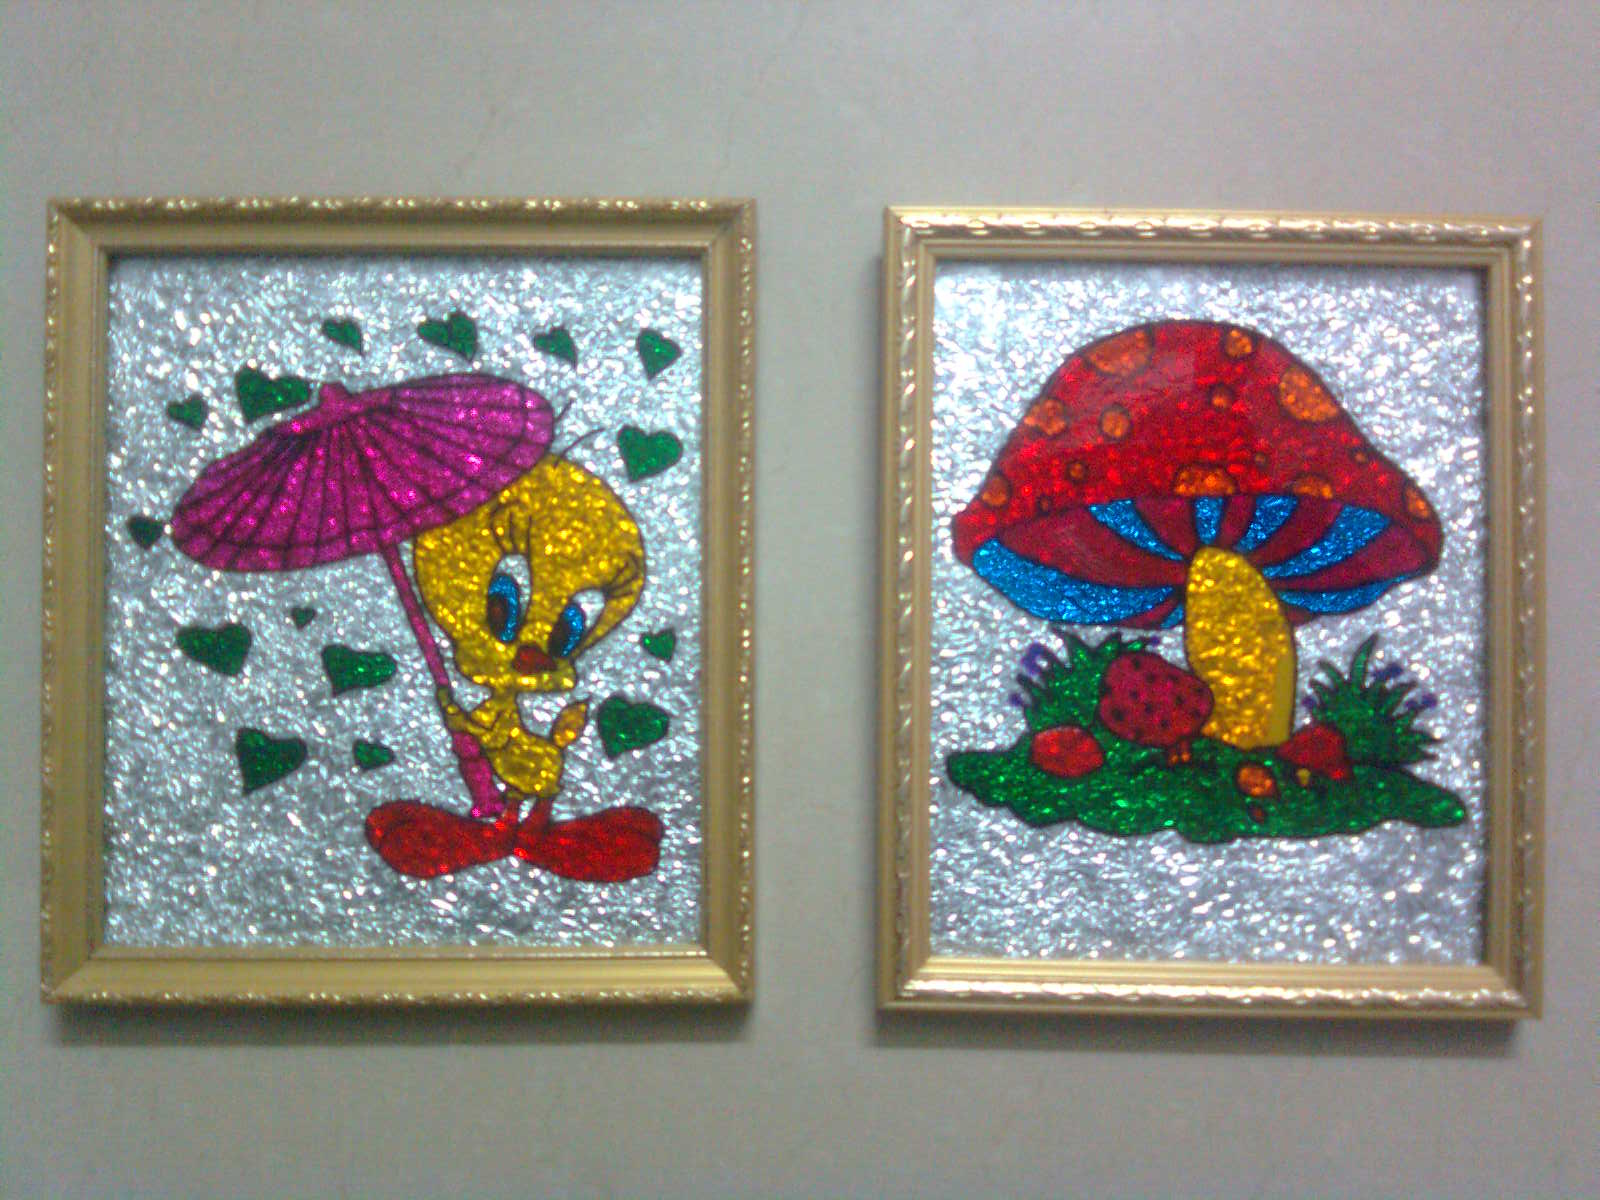 Dreams and creations the joy of glass painting for Simple glass painting pictures